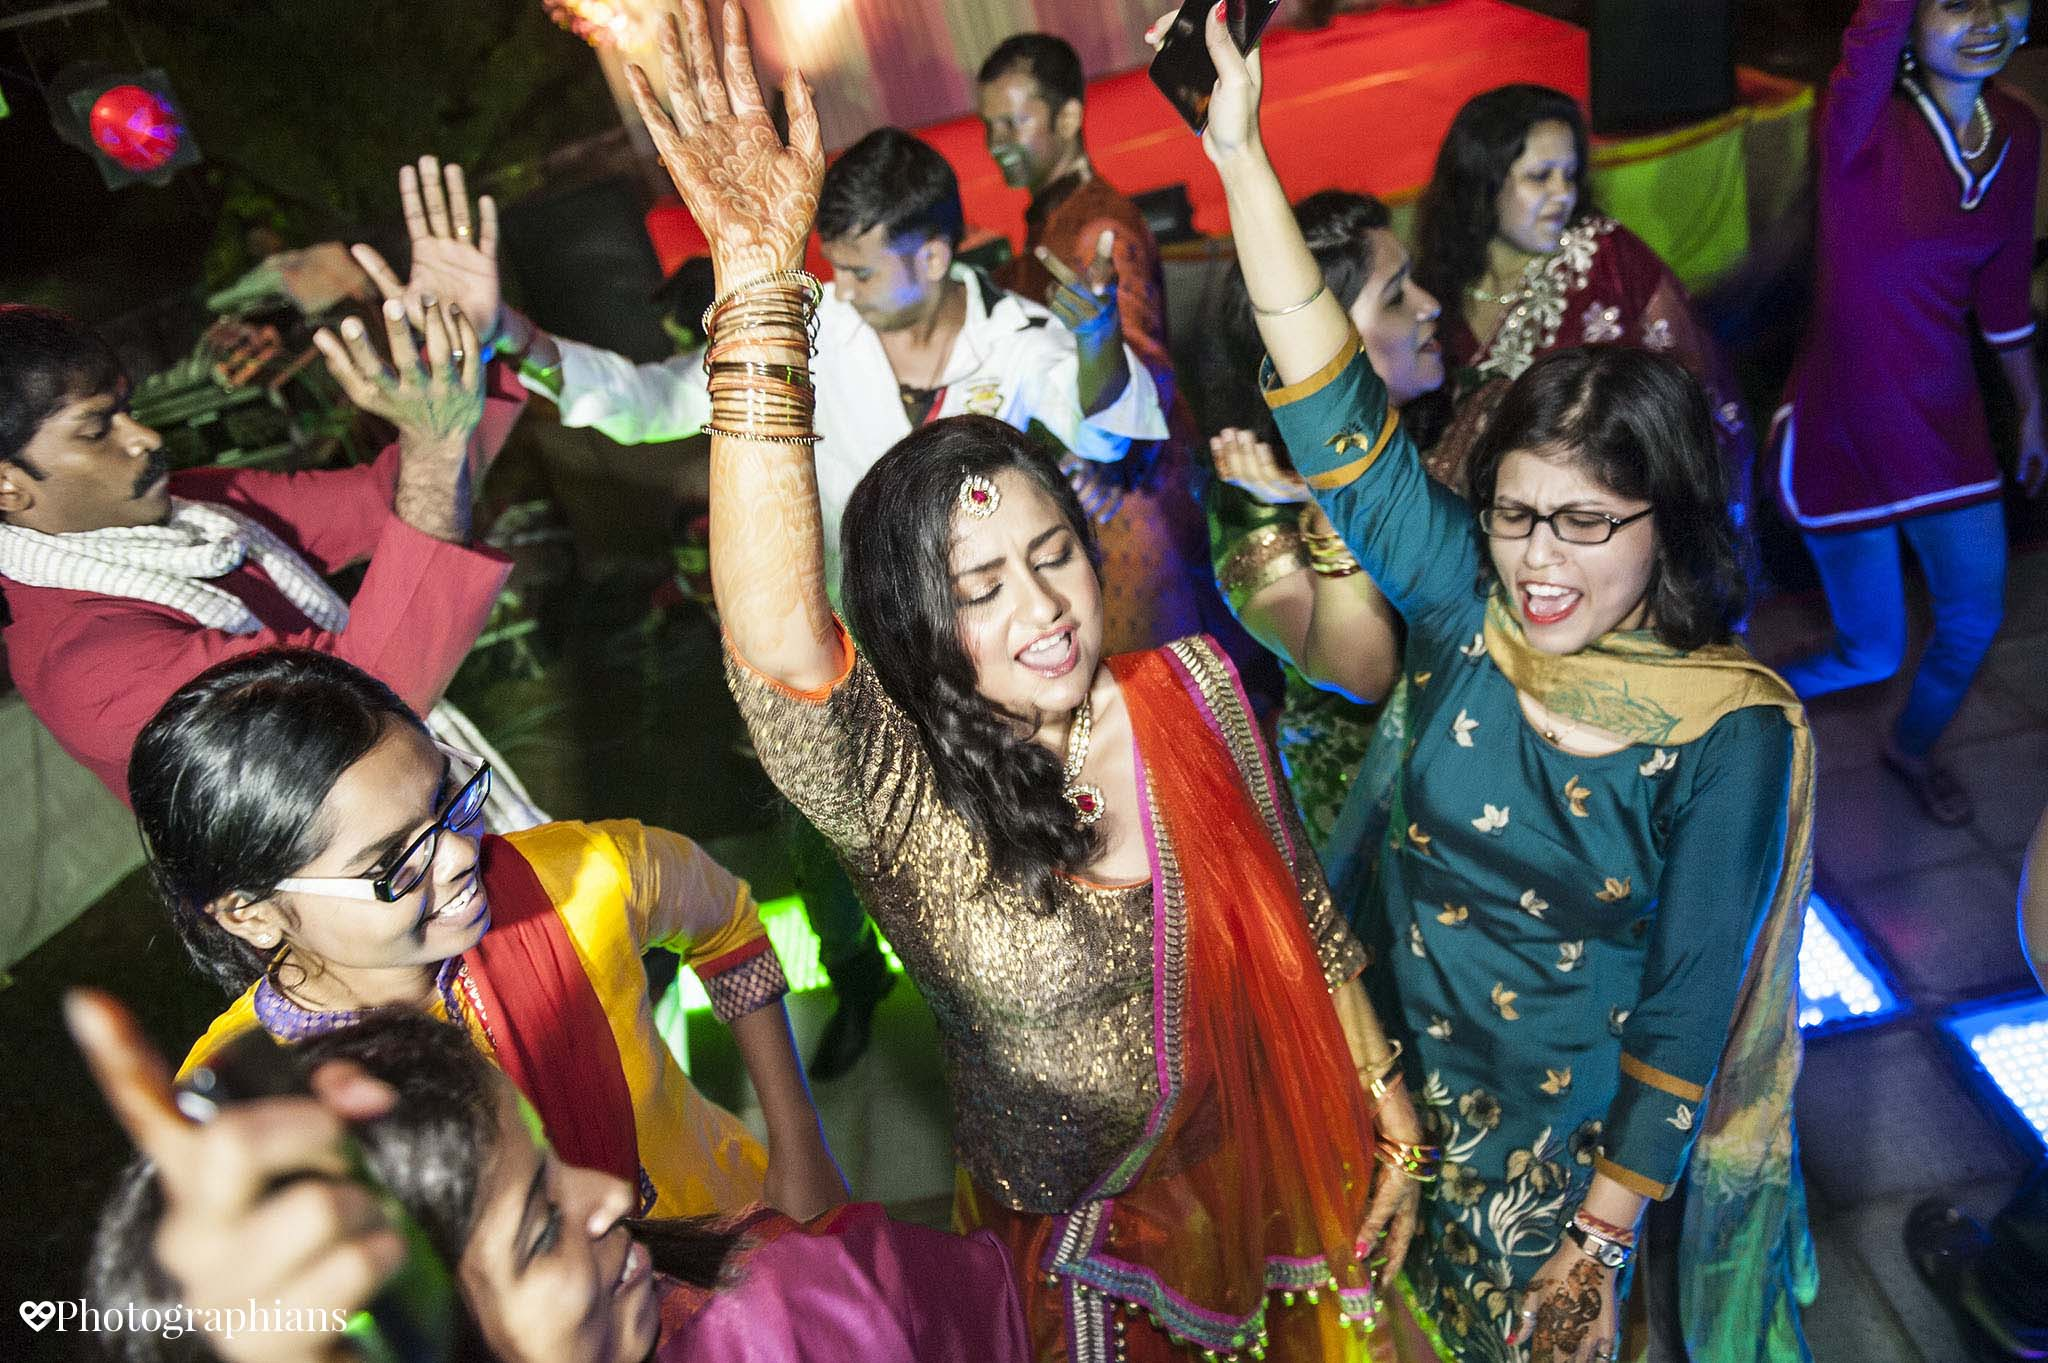 Photographians_Indian_Destination_Wedding_123